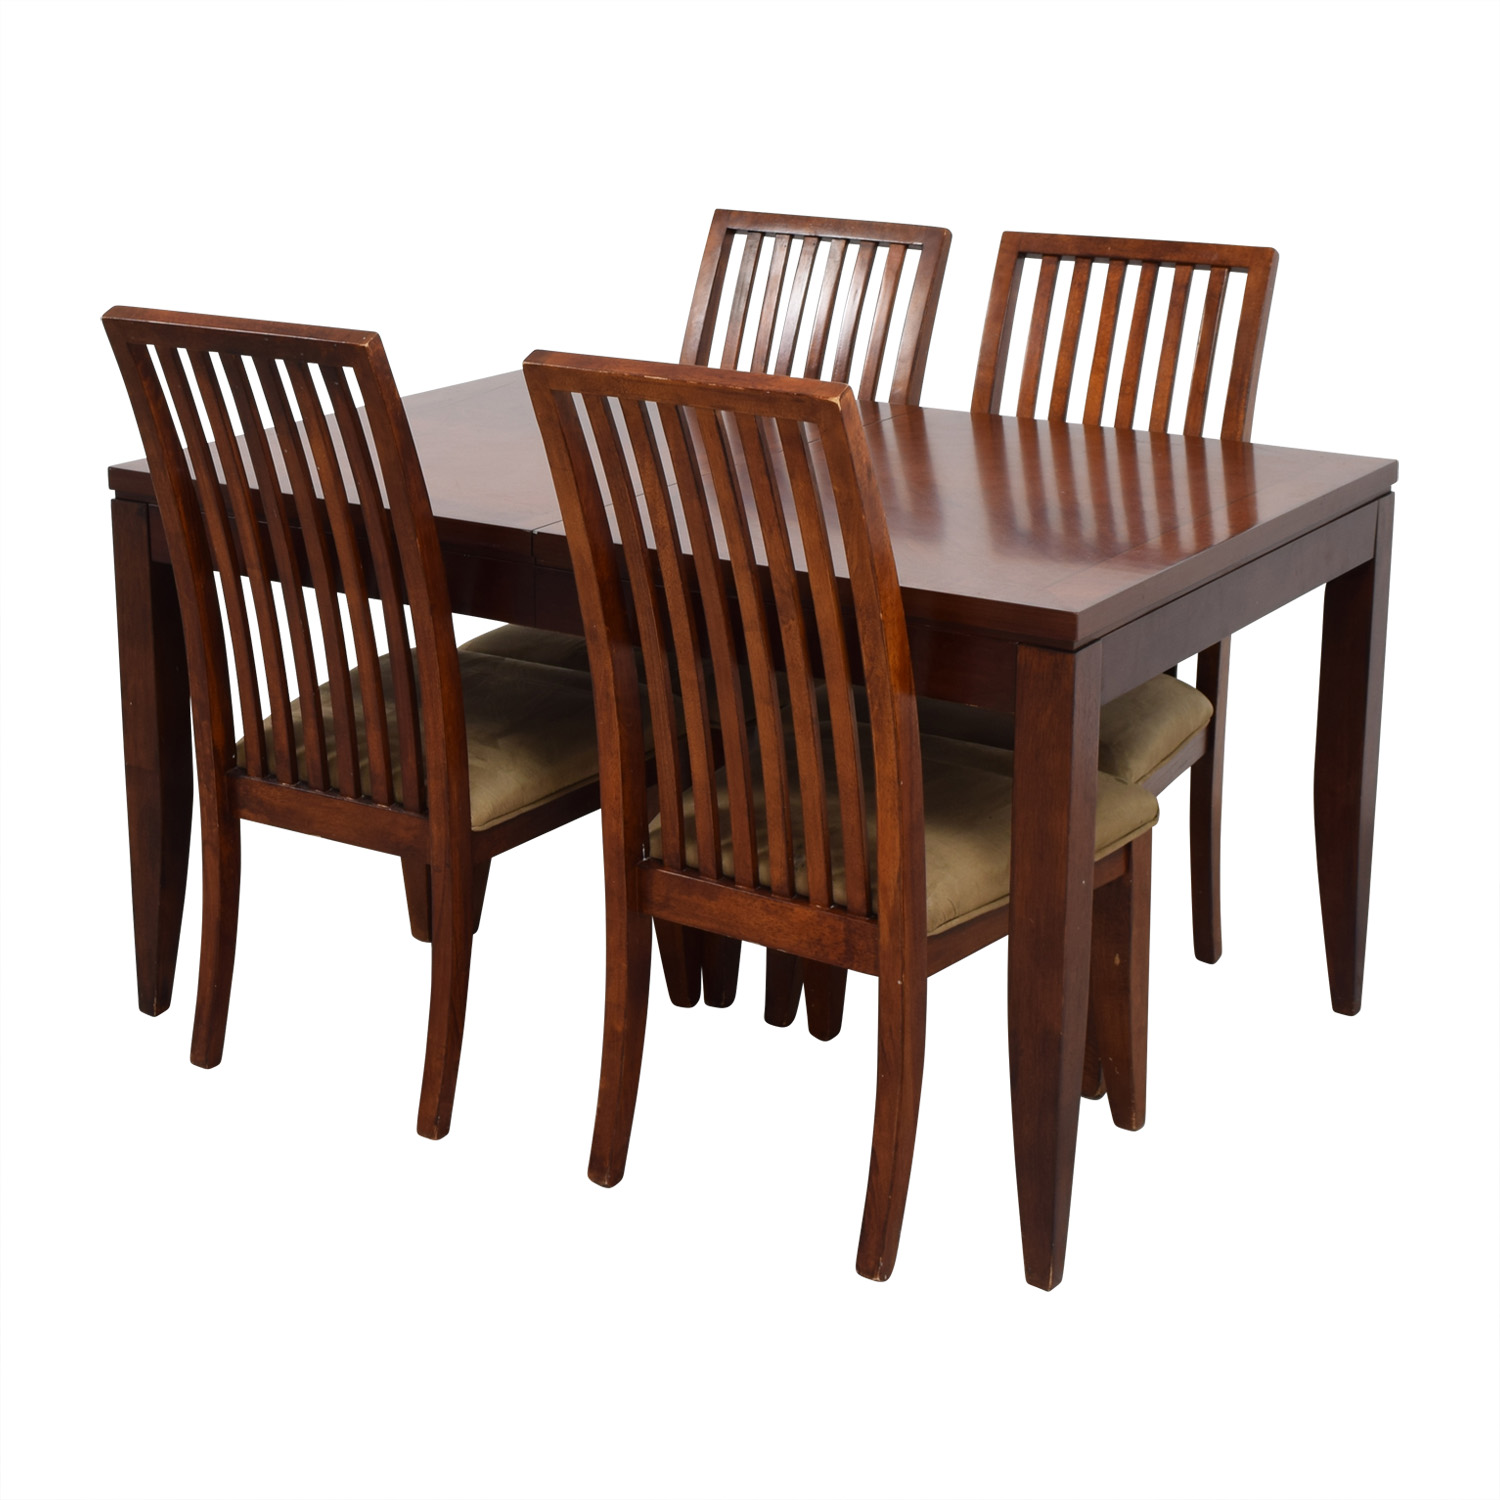 macys dining chairs buy beach 74 off macy 39s wood set with extendable